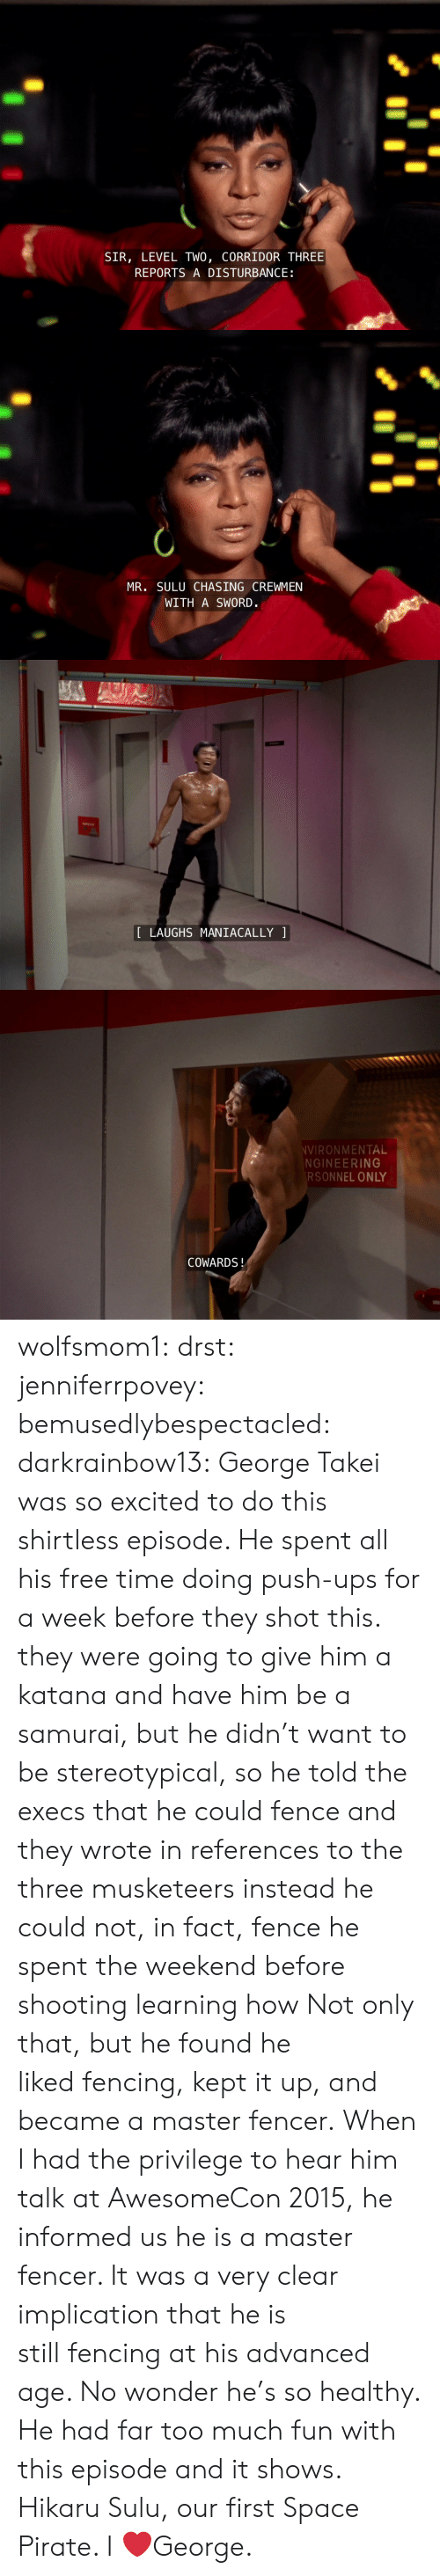 push ups: SIR, LEVEL TWO, CORRIDOR THREE  REPORTS A DISTURBANCE   MR. SULU CHASING CREWMEN  WITH A SWORD.   LAUGHS MANIACALLY   VIRONMENTAL  NGINEERING  RSONNEL ONLY  COWARDS! wolfsmom1:  drst:   jenniferrpovey:  bemusedlybespectacled:  darkrainbow13:  George Takei was so excited to do this shirtless episode. He spent all his free time doing push-ups for a week before they shot this.  they were going to give him a katana and have him be a samurai, but he didn't want to be stereotypical, so he told the execs that he could fence and they wrote in references to the three musketeers instead he could not, in fact, fence he spent the weekend before shooting learning how  Not only that, but he found he likedfencing, kept it up, and became a master fencer. When I had the privilege to hear him talk at AwesomeCon 2015, he informed us he isa master fencer. It was a very clear implication that he is stillfencing at his advanced age. No wonder he's so healthy. He had fartoo much fun with this episode and it shows.   Hikaru Sulu, our first Space Pirate.    I ❤️George.